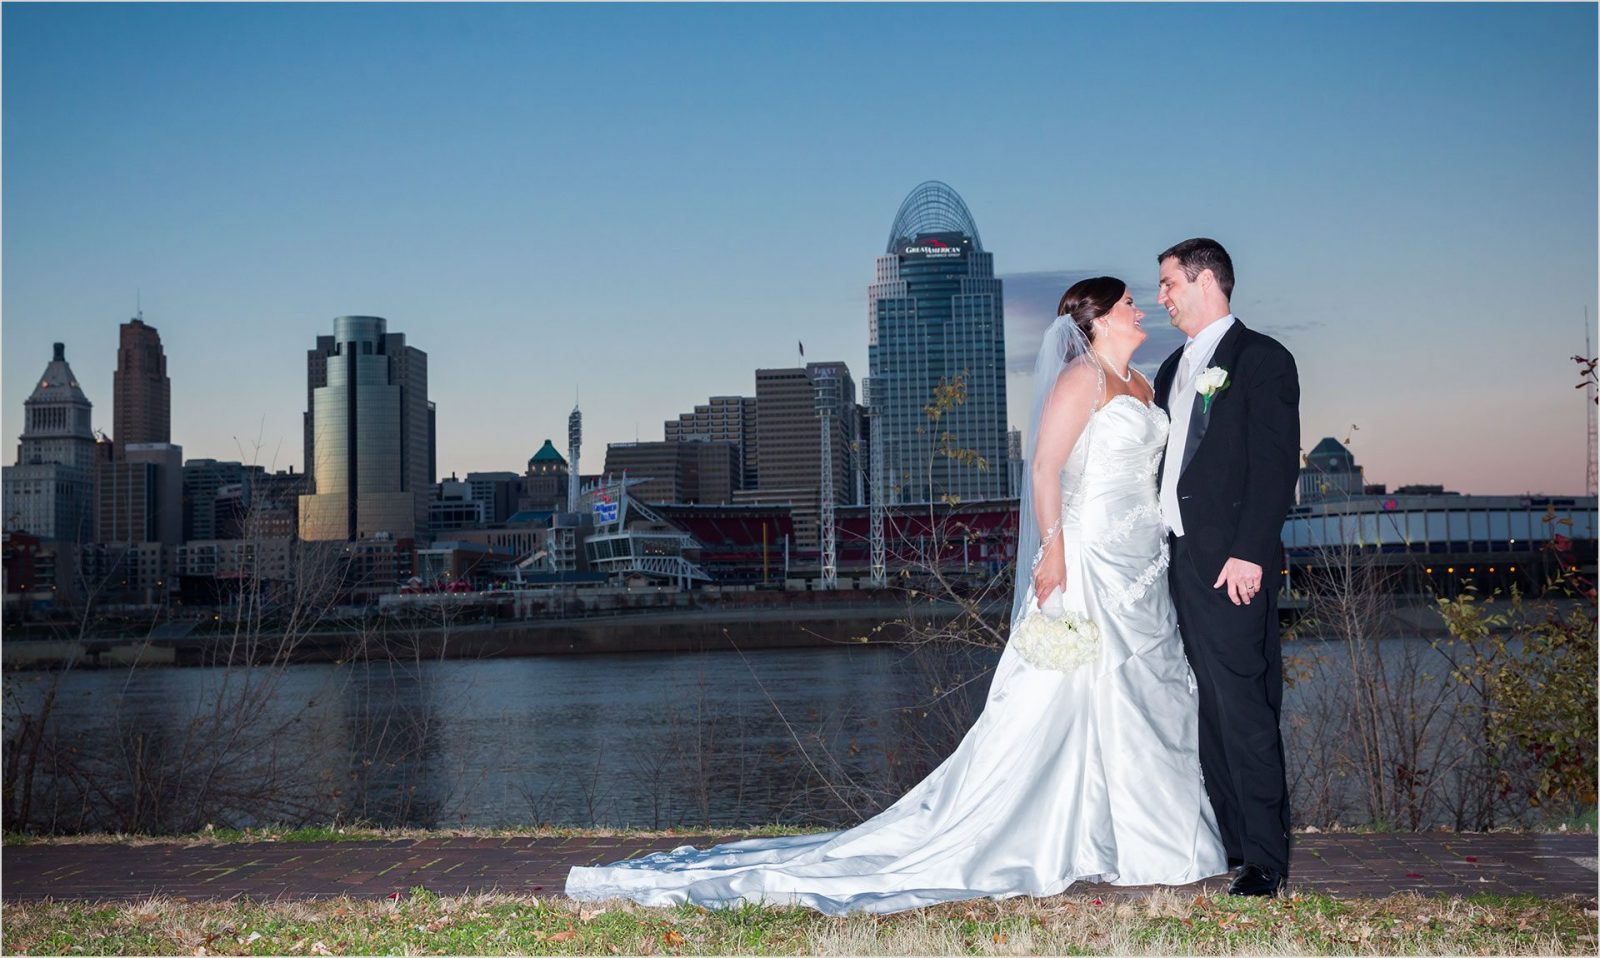 Cincinnati sklyine Wedding picture Bride Groom